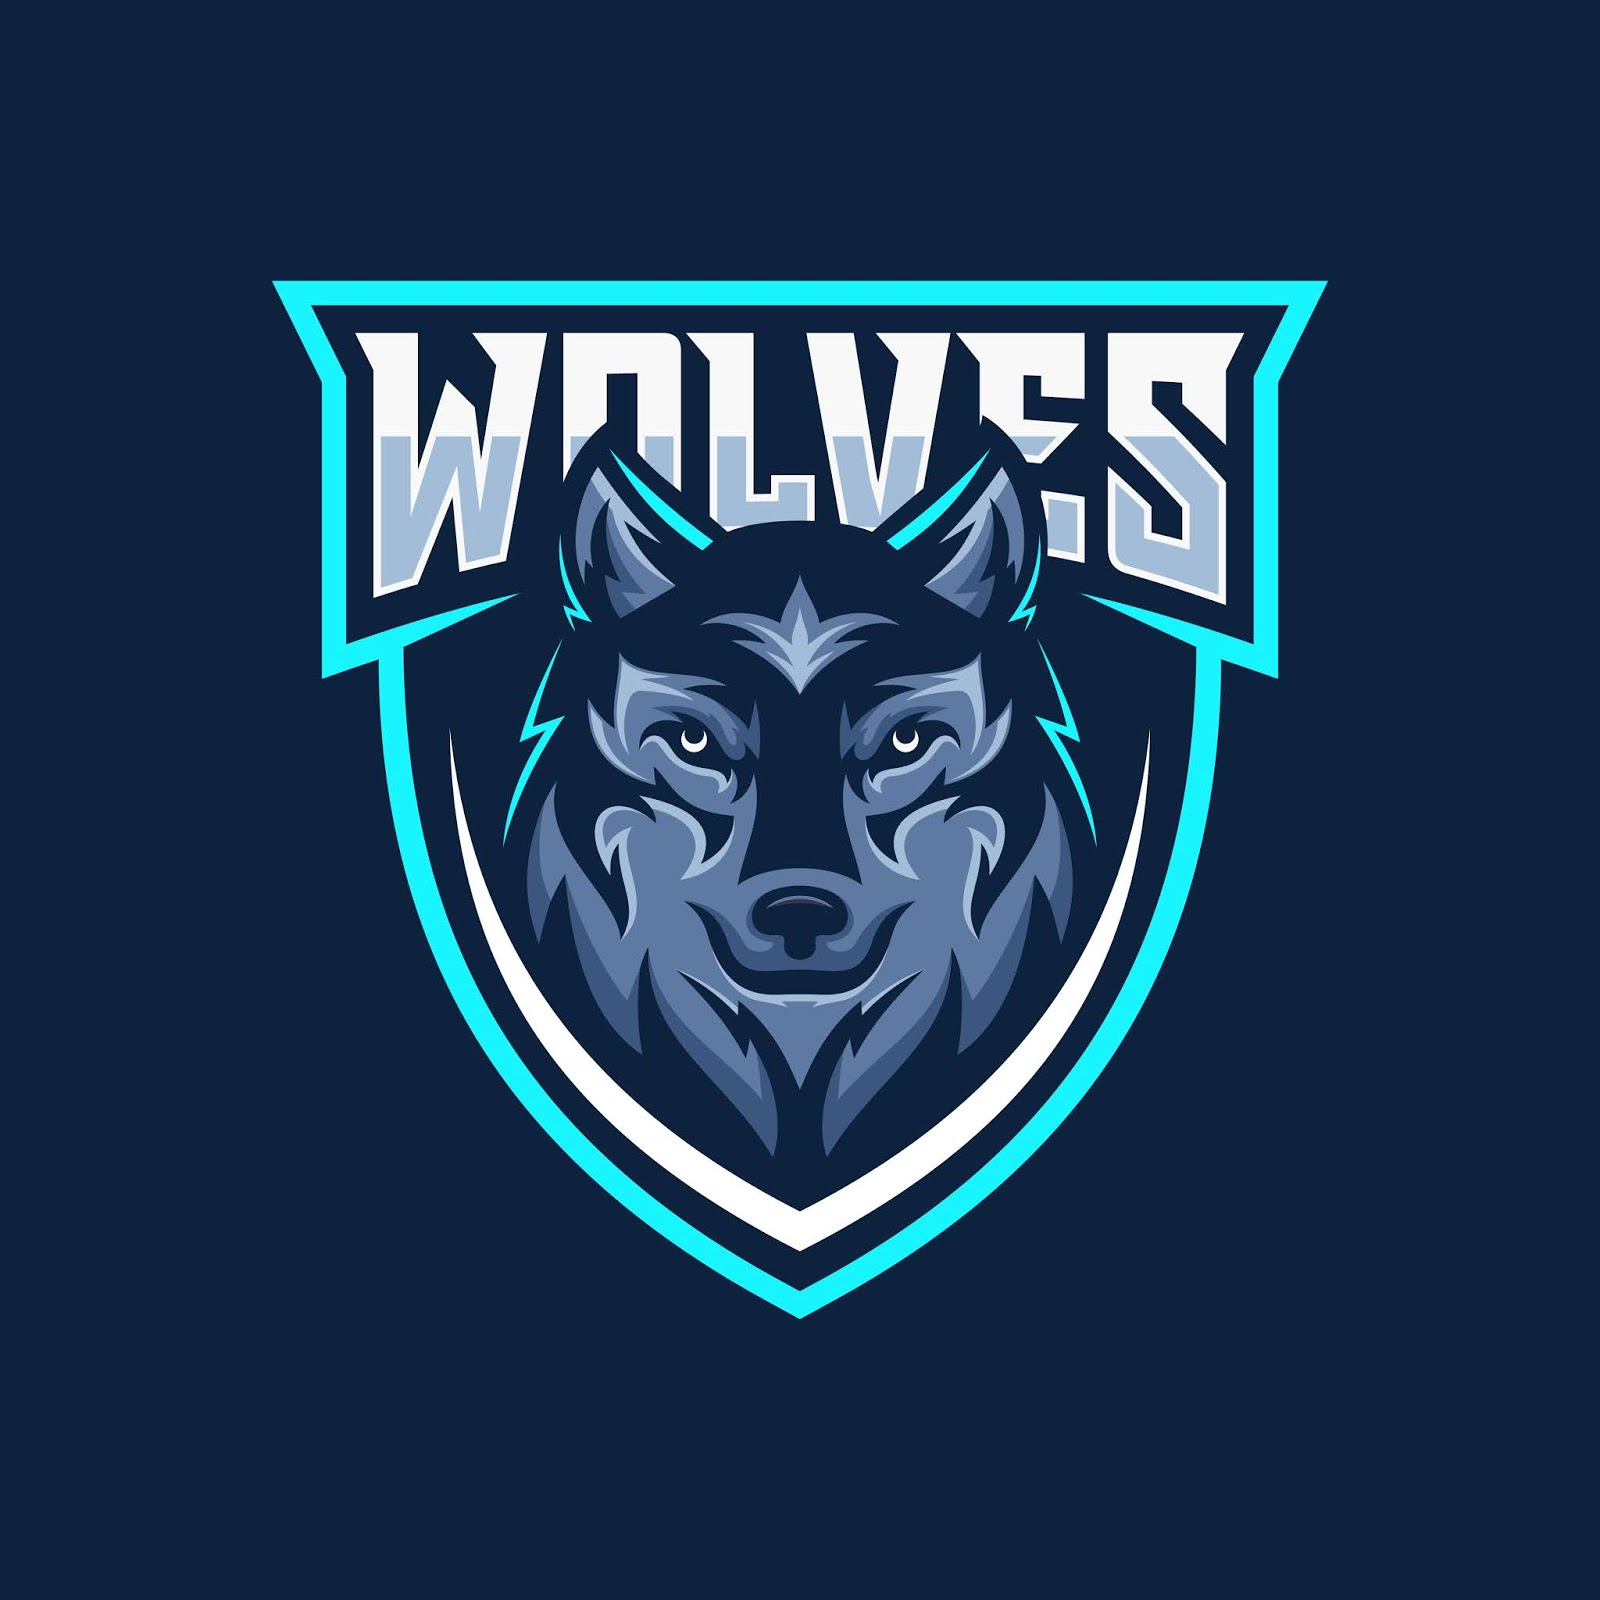 Wild Wolf Esport Mascot Logo Free Download Vector CDR, AI, EPS and PNG Formats